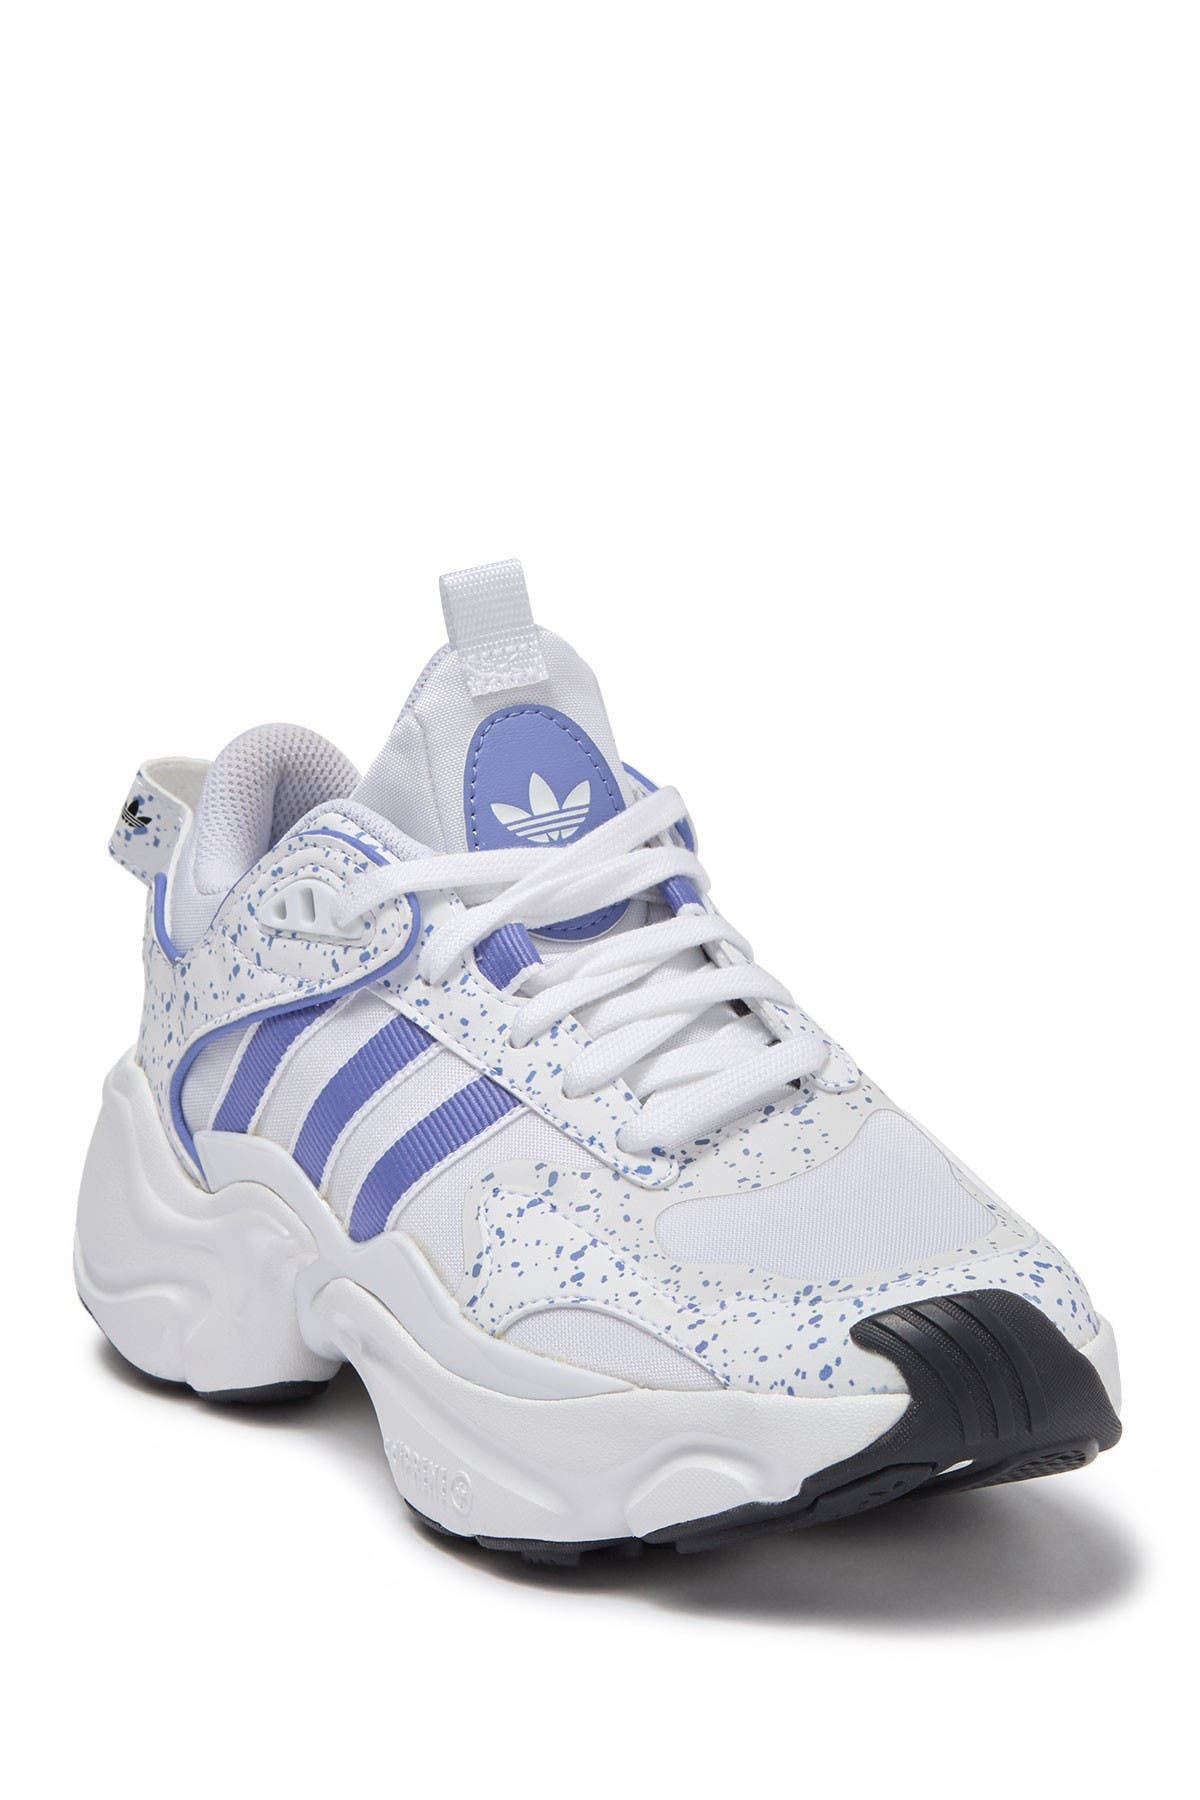 adidas donna sneakers runner